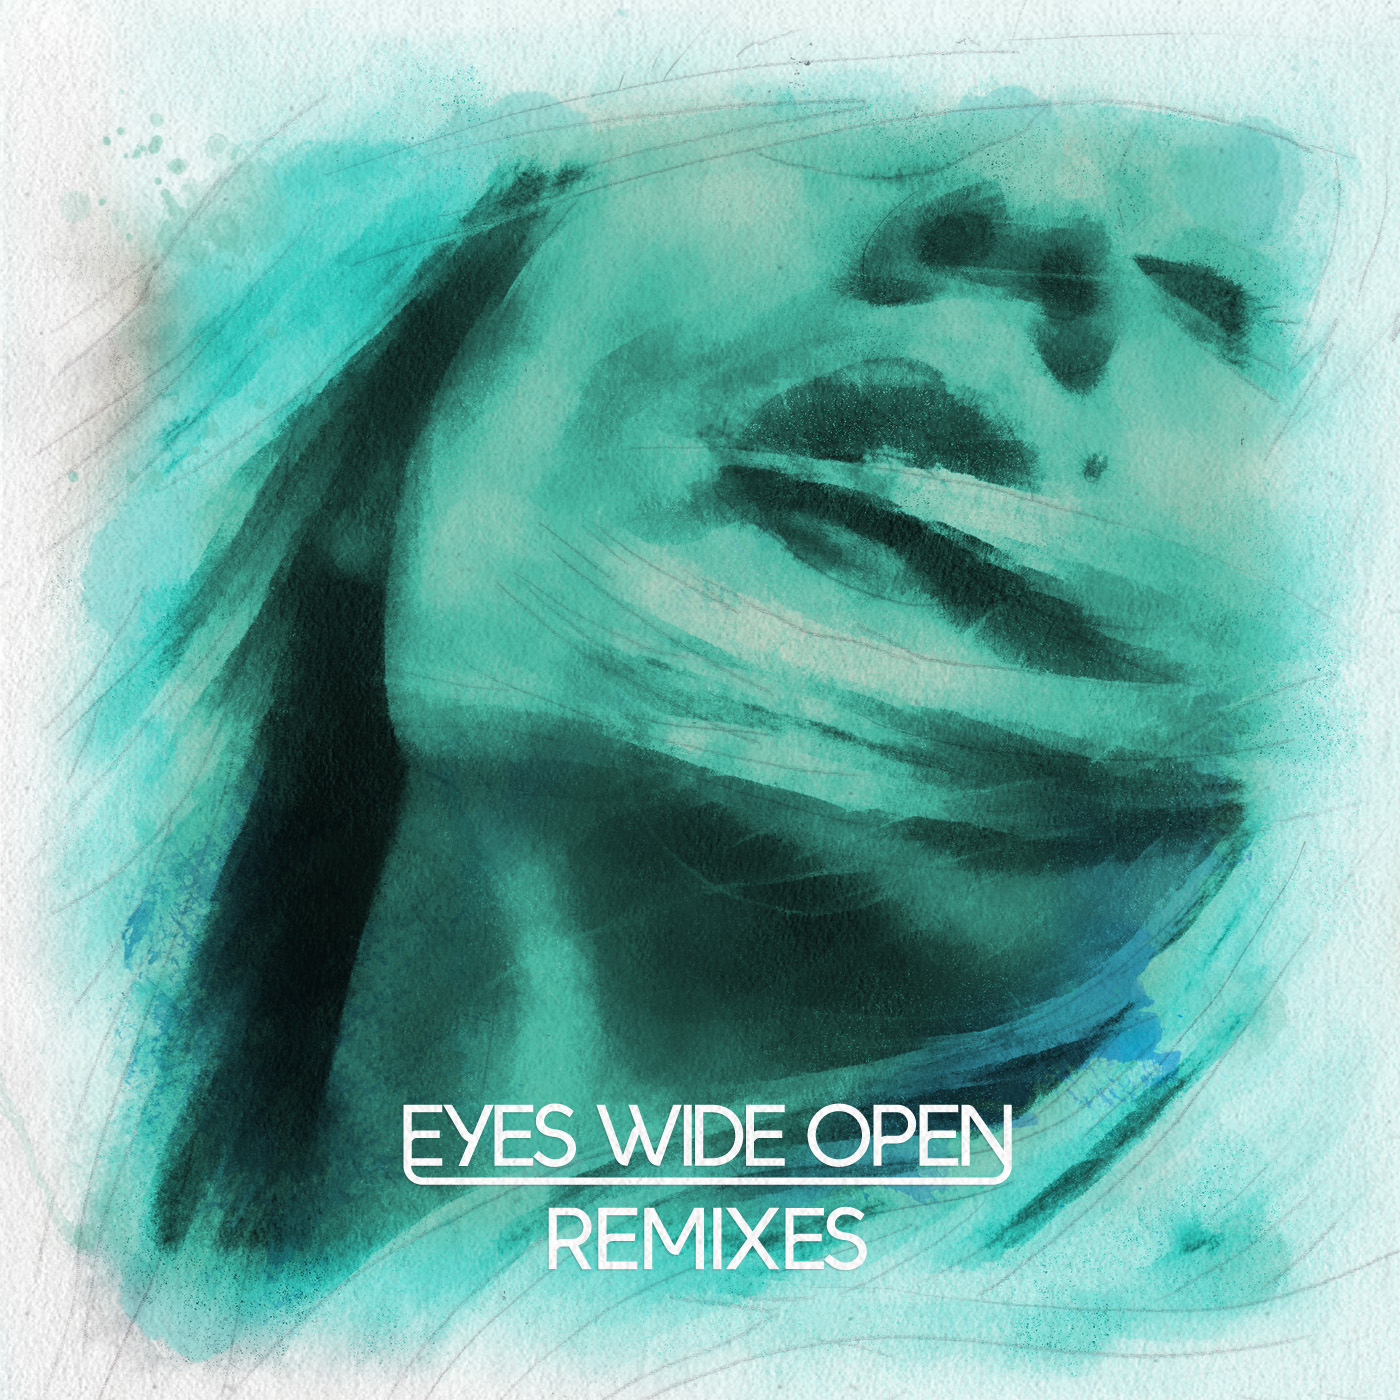 Eyes Wide Open Remixes Dirty South & Thomas Gold Feat. Kate Elsworth – Eyes Wide Open (Lenno & Felguk Remixes)